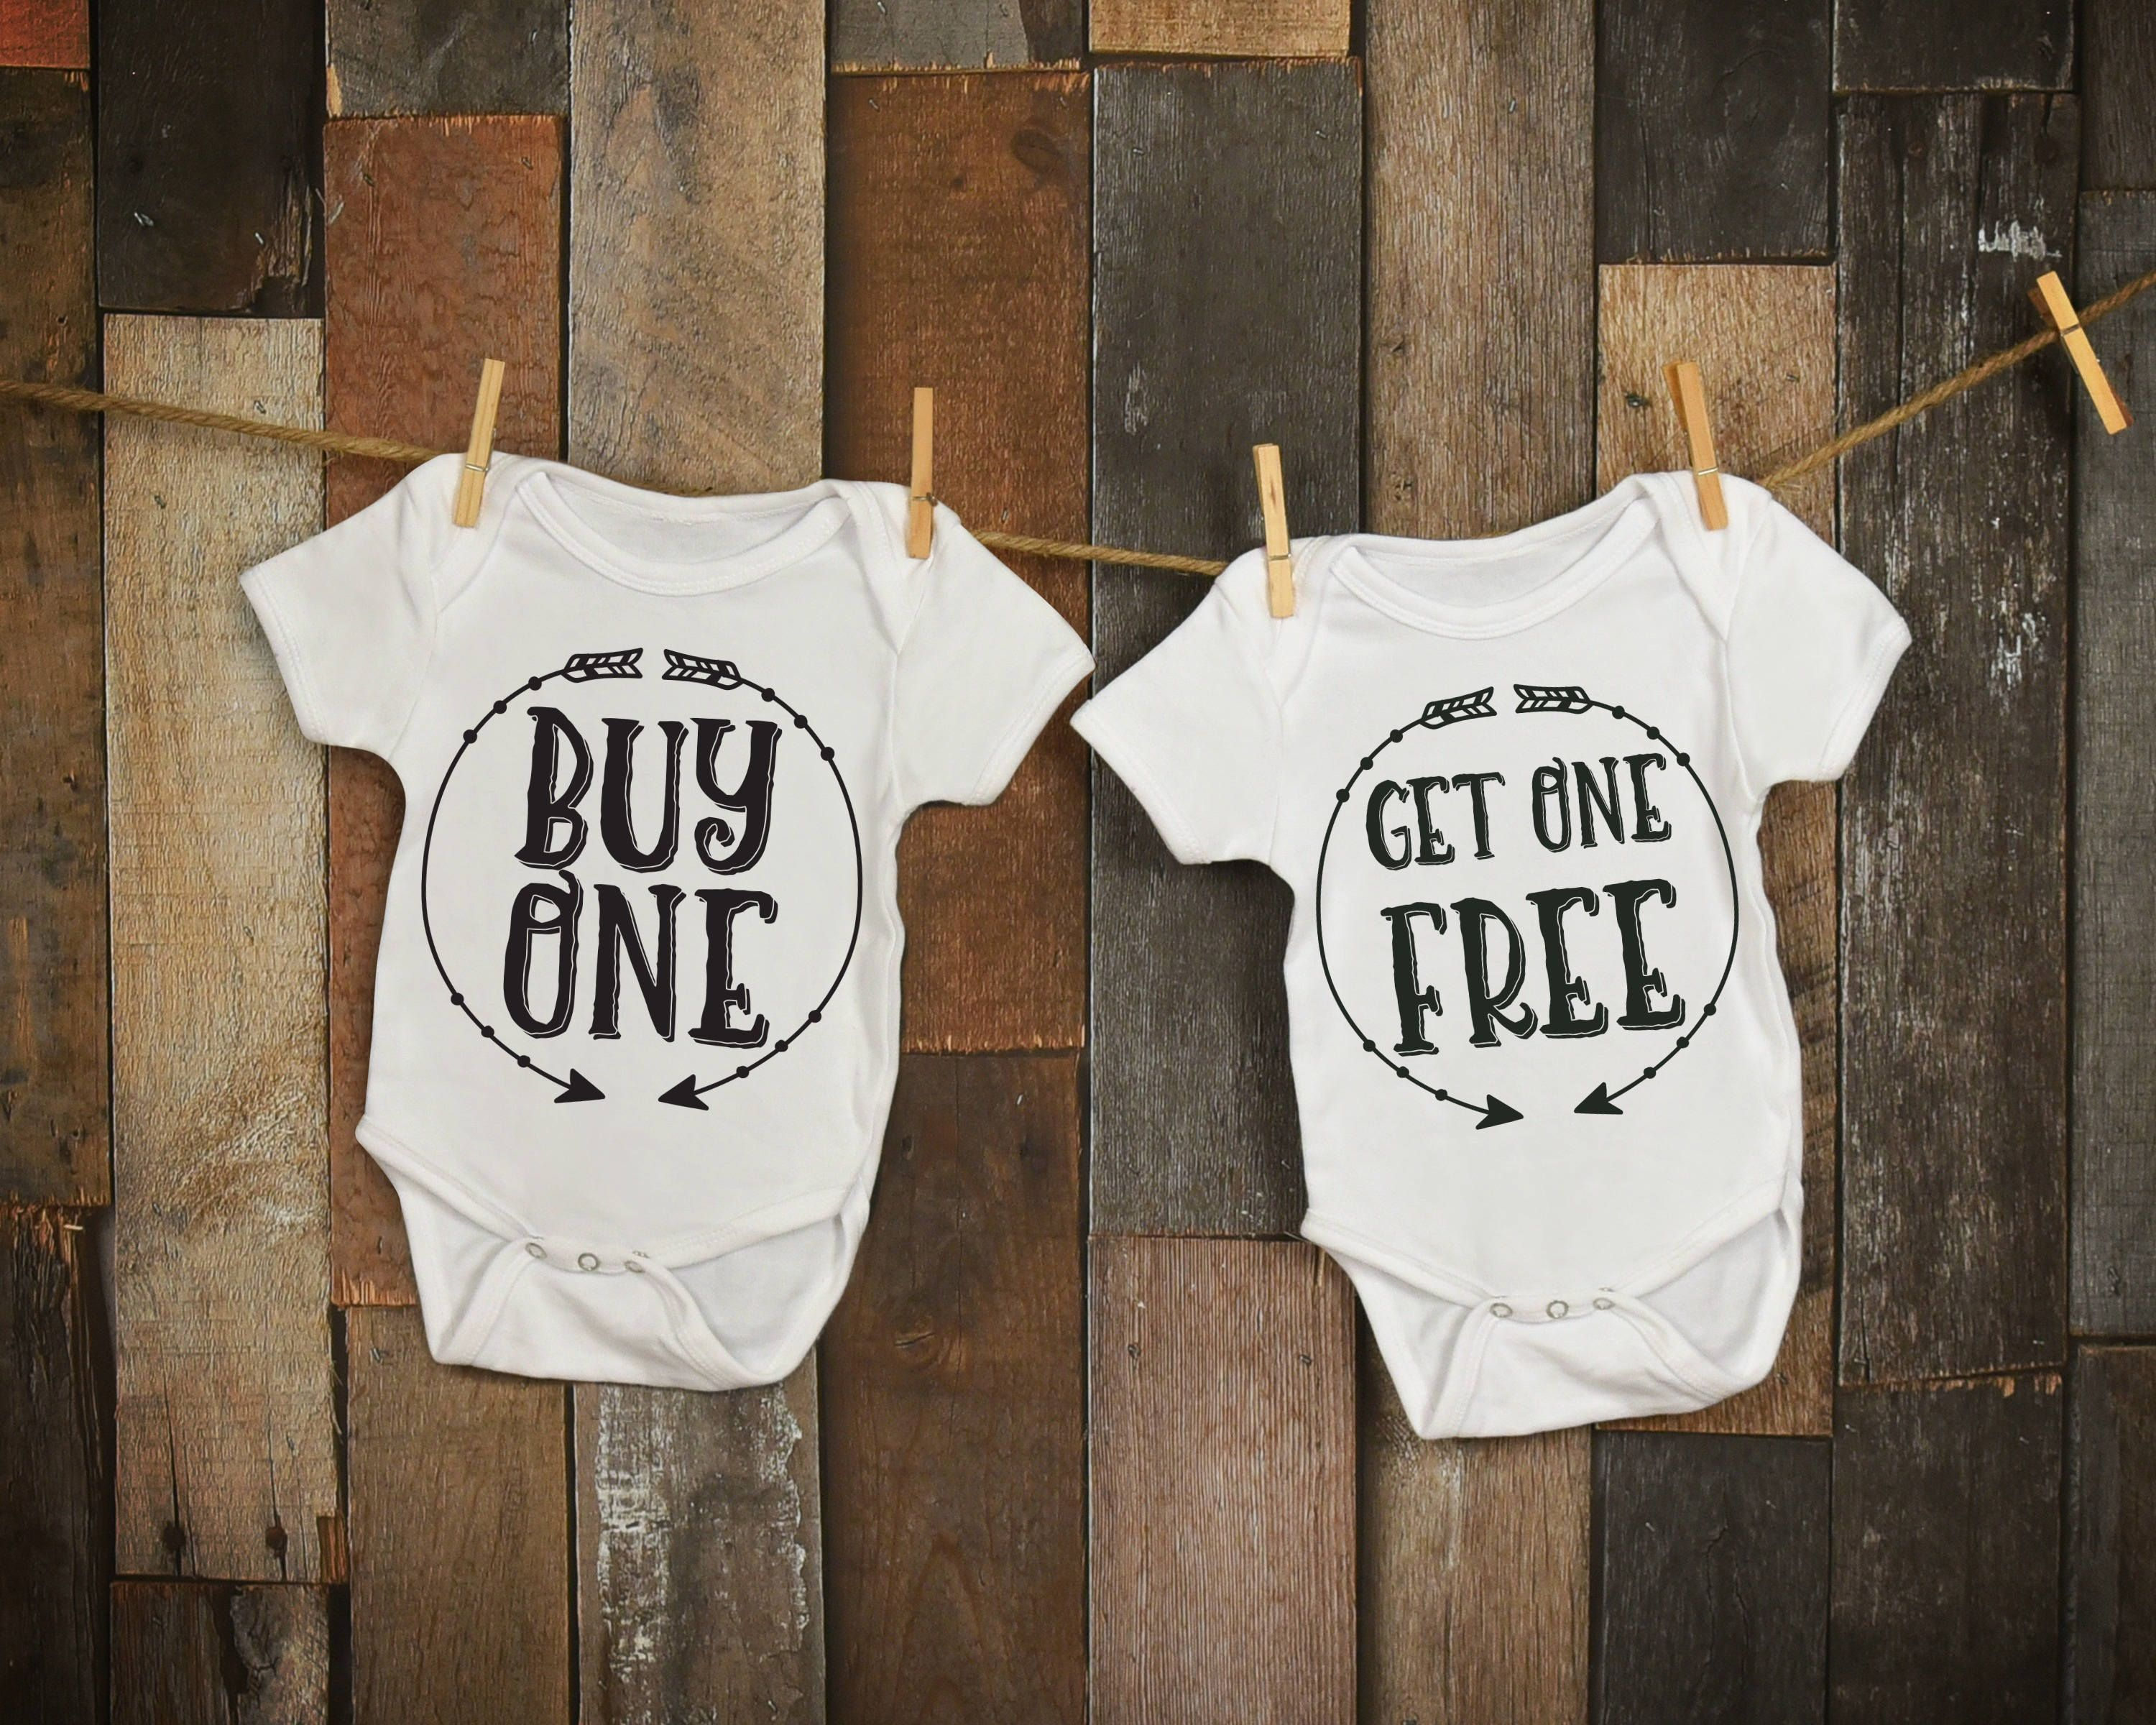 bd4c1d0ae Buy One Get One Free ~~ Twin Baby Onesies ~~~Choice of Two colors ...